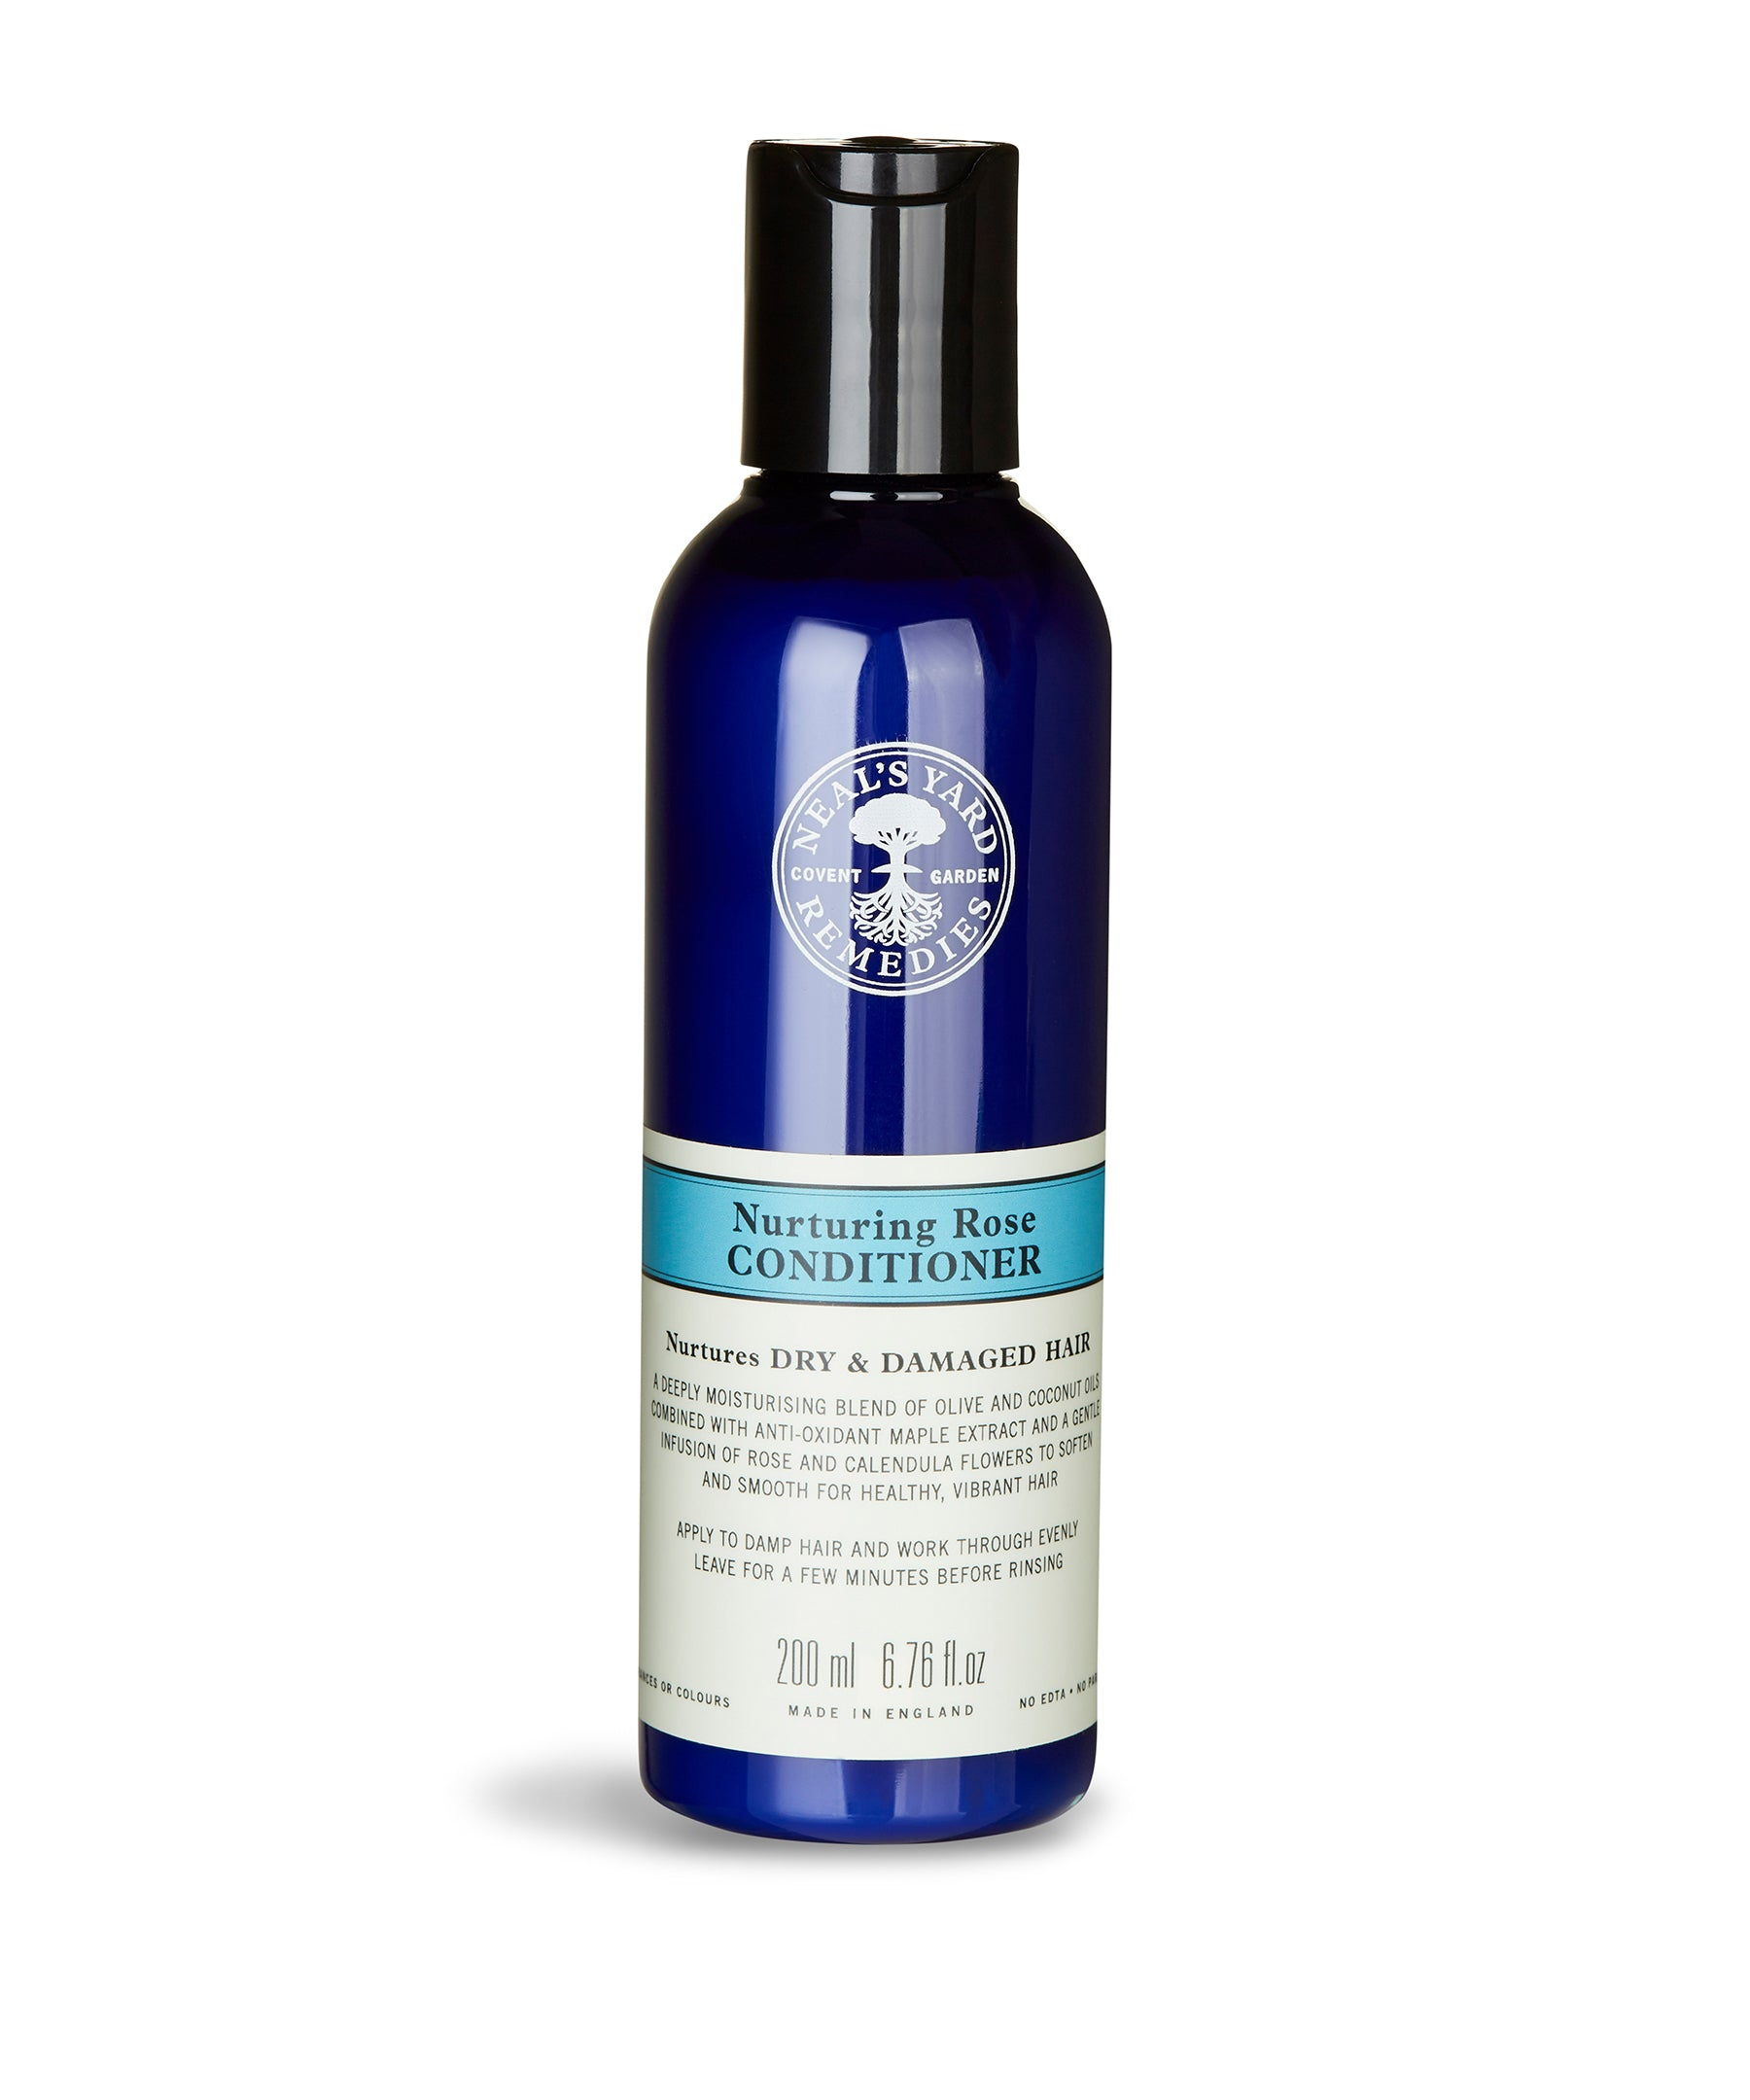 Nurturing Rose Conditioner by Neal's Yard Remedies